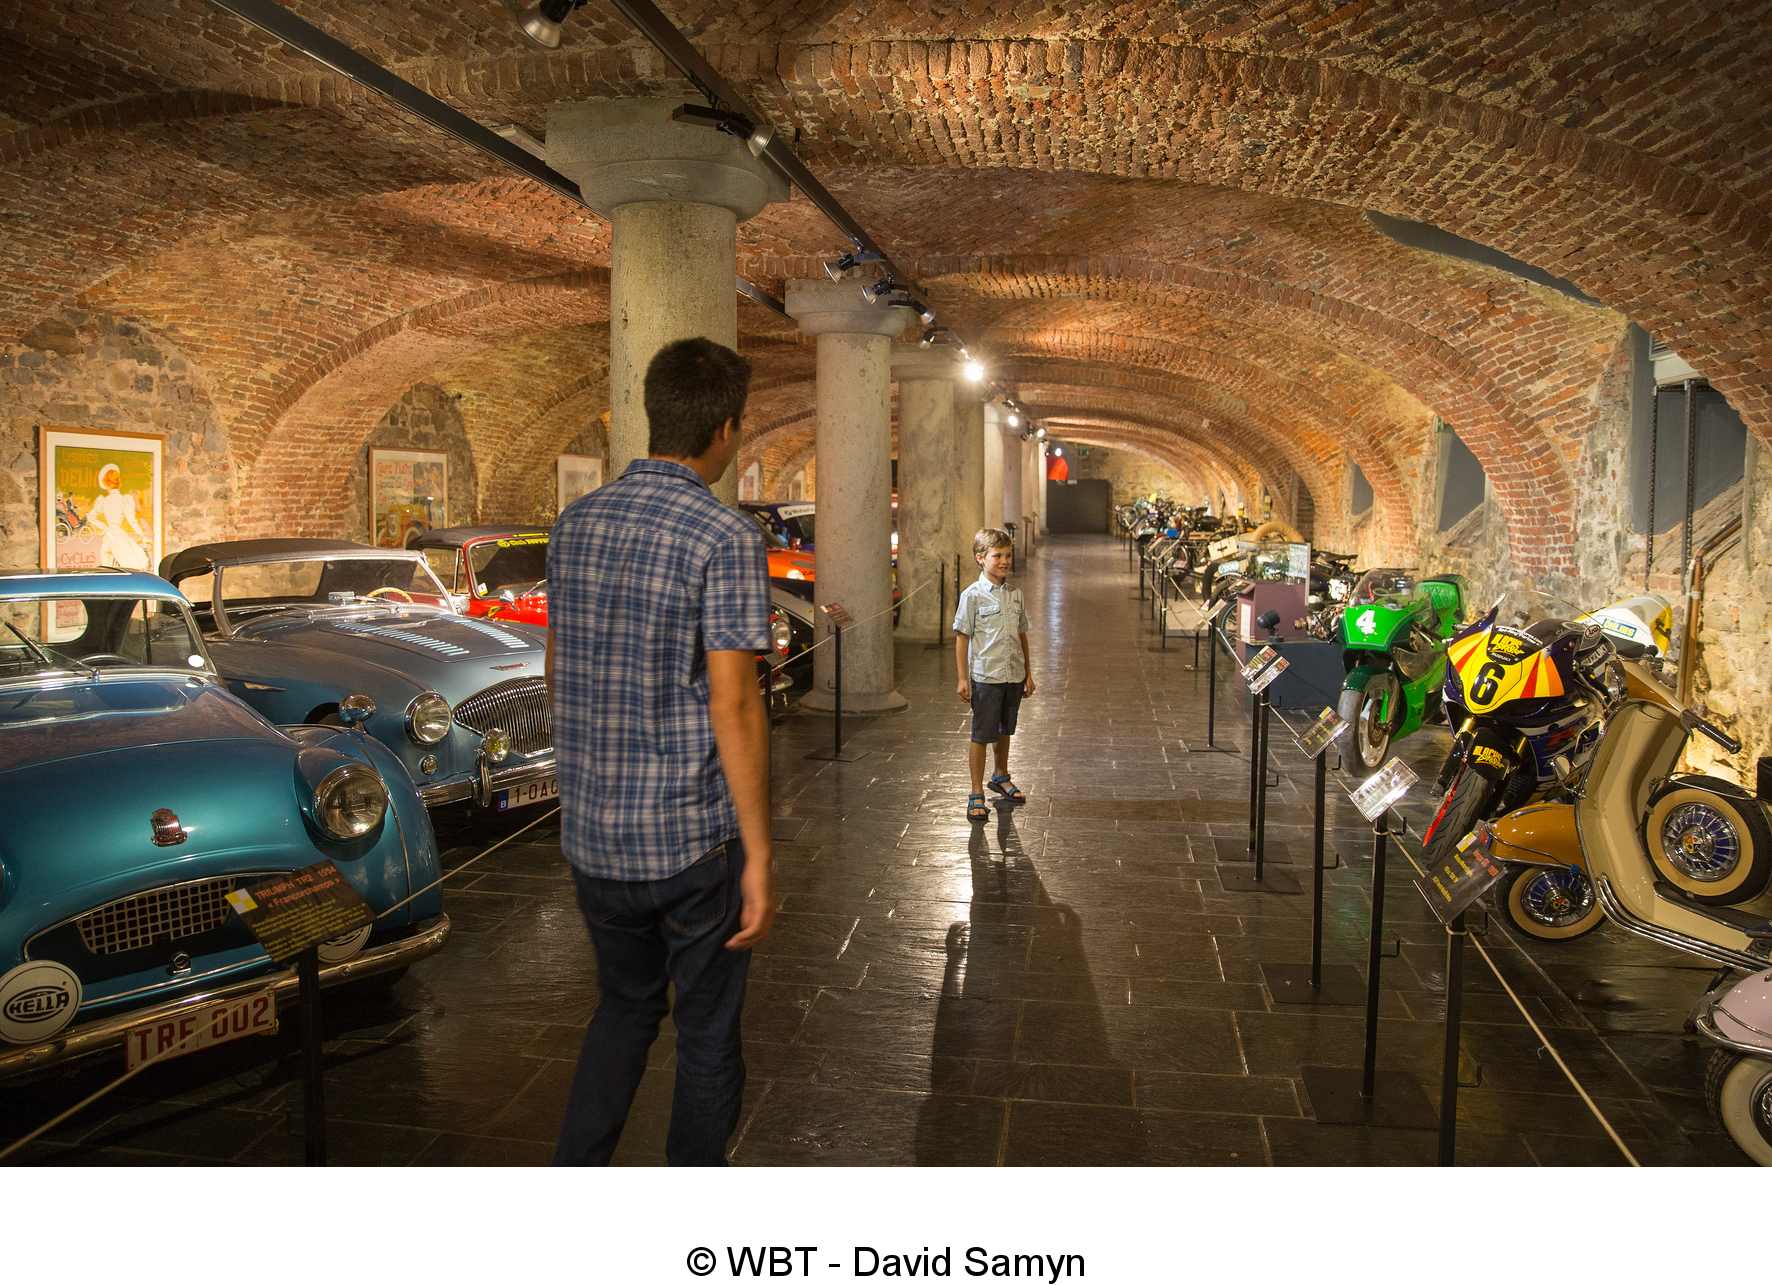 Discover the Spa-Francorchamps racetracks museum in Stavelot